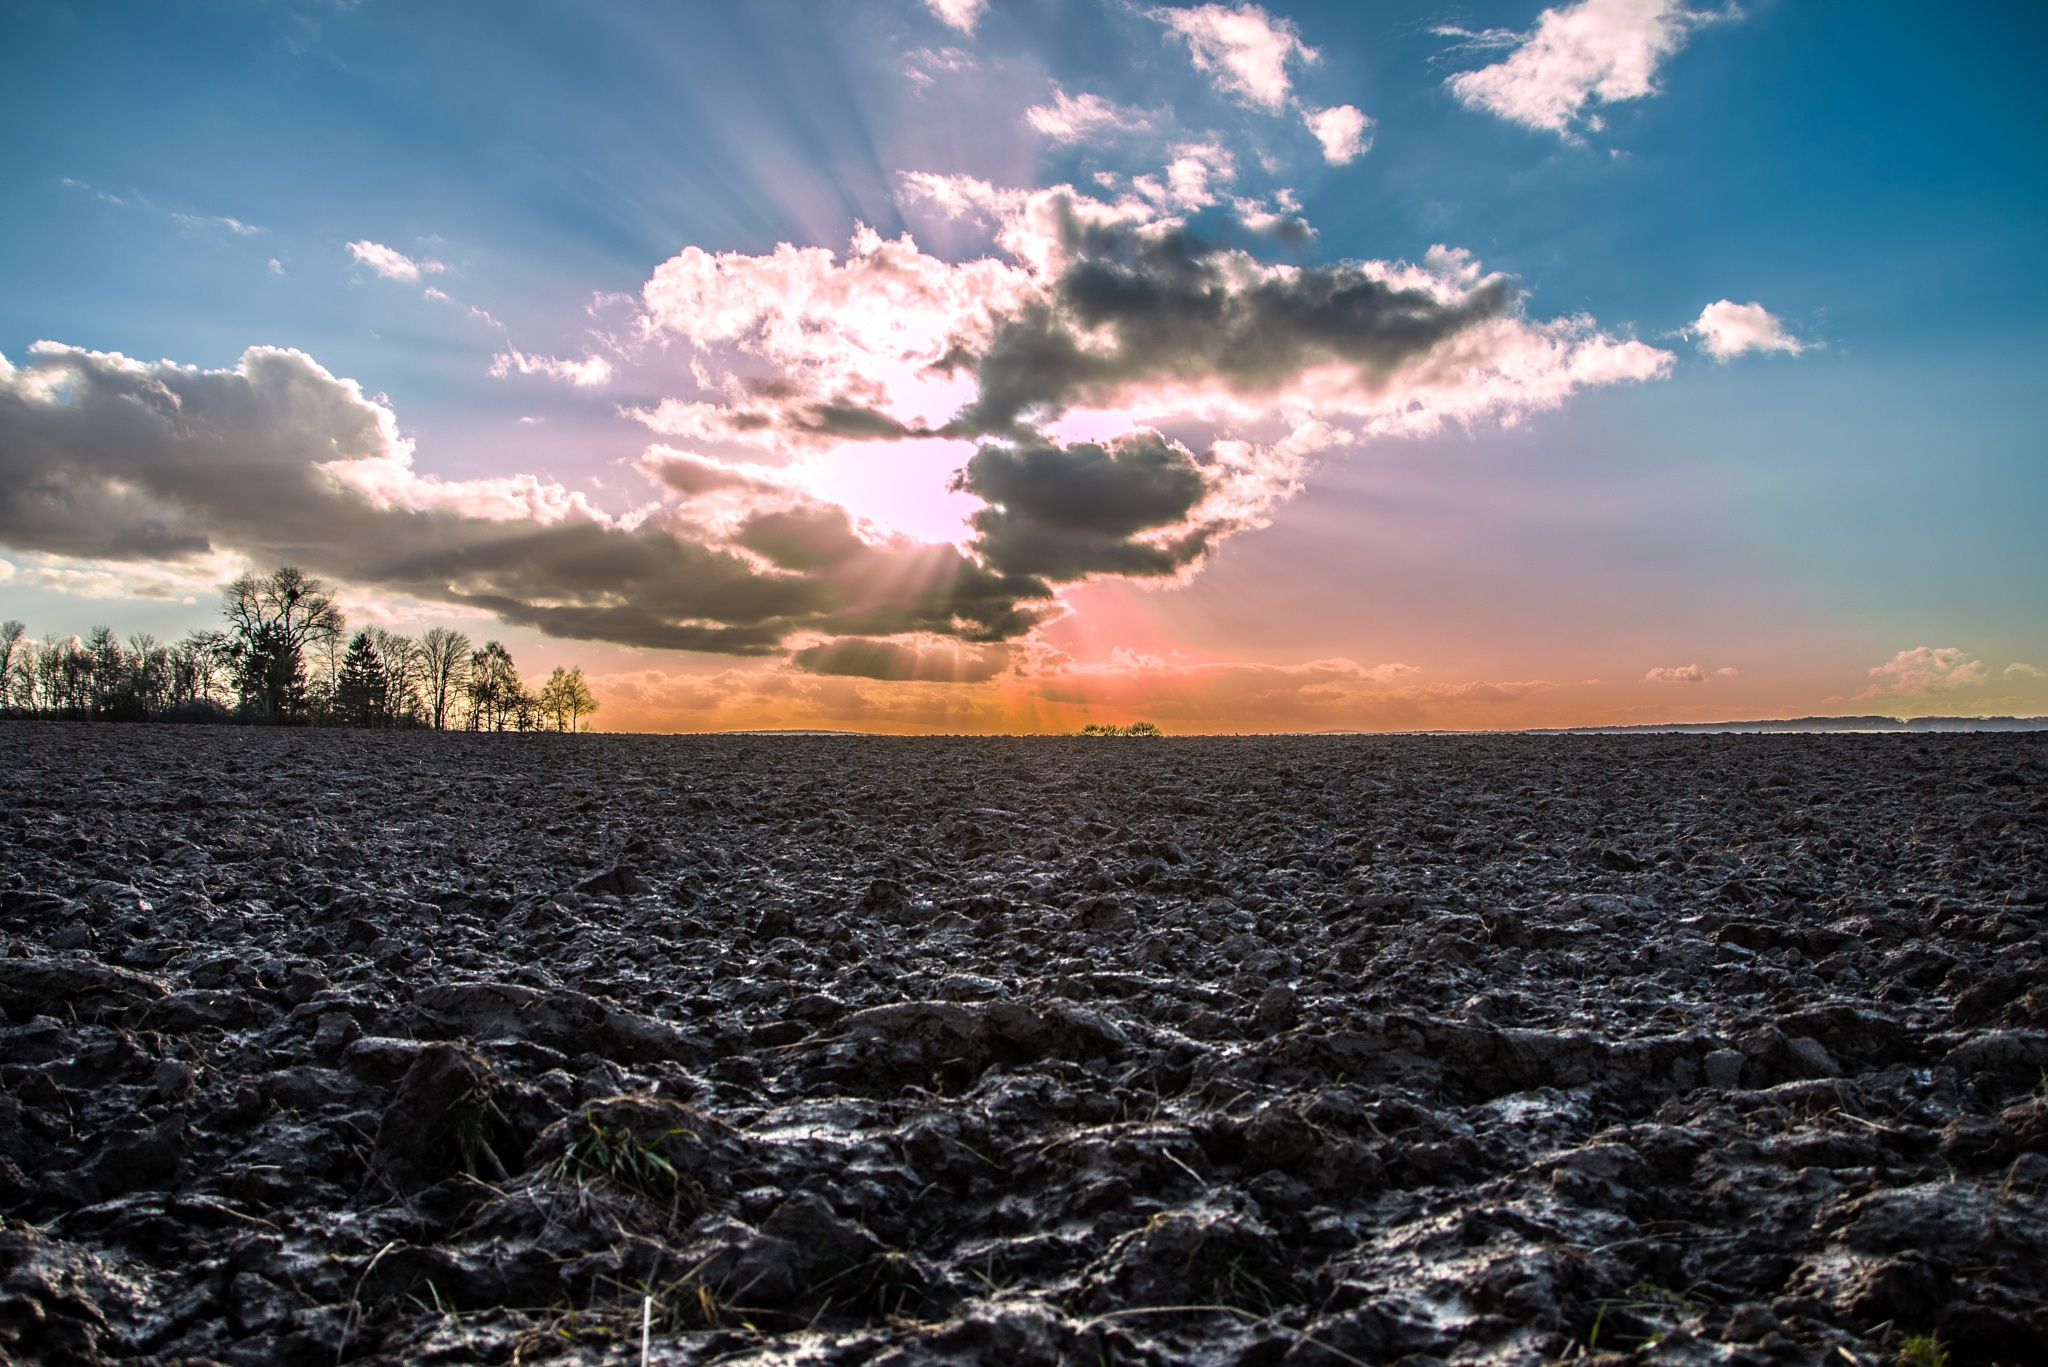 Sunset on muddy fields - Hollenfels - Luxembourg by Chamkhi Jamil